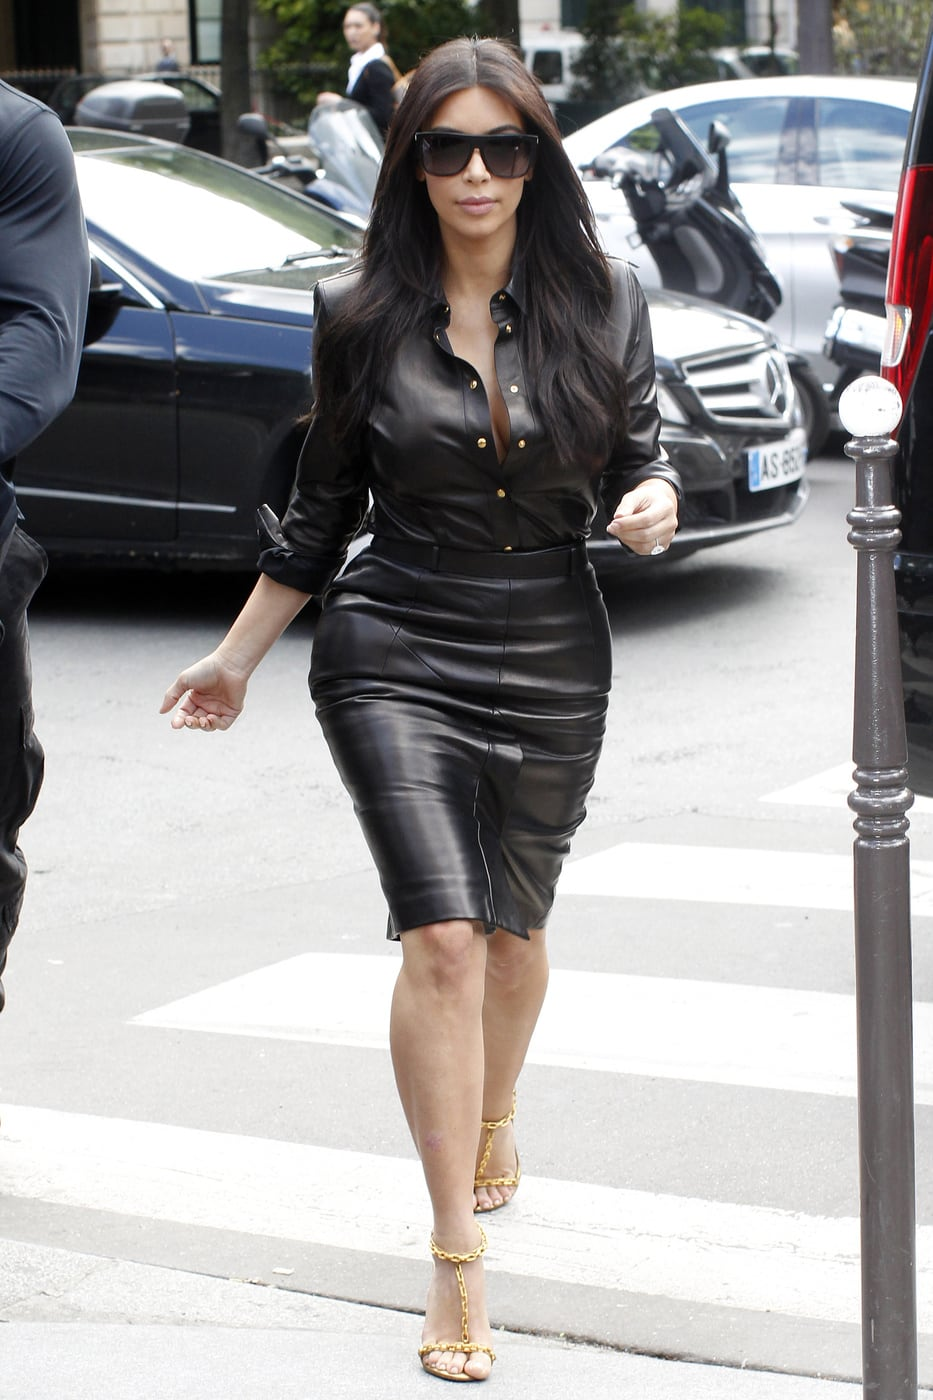 Celebrity fashion: Kim Kardashian wearing a black leather skirt and black leather button down shirt, oversized sunglasses, and gold chain heels